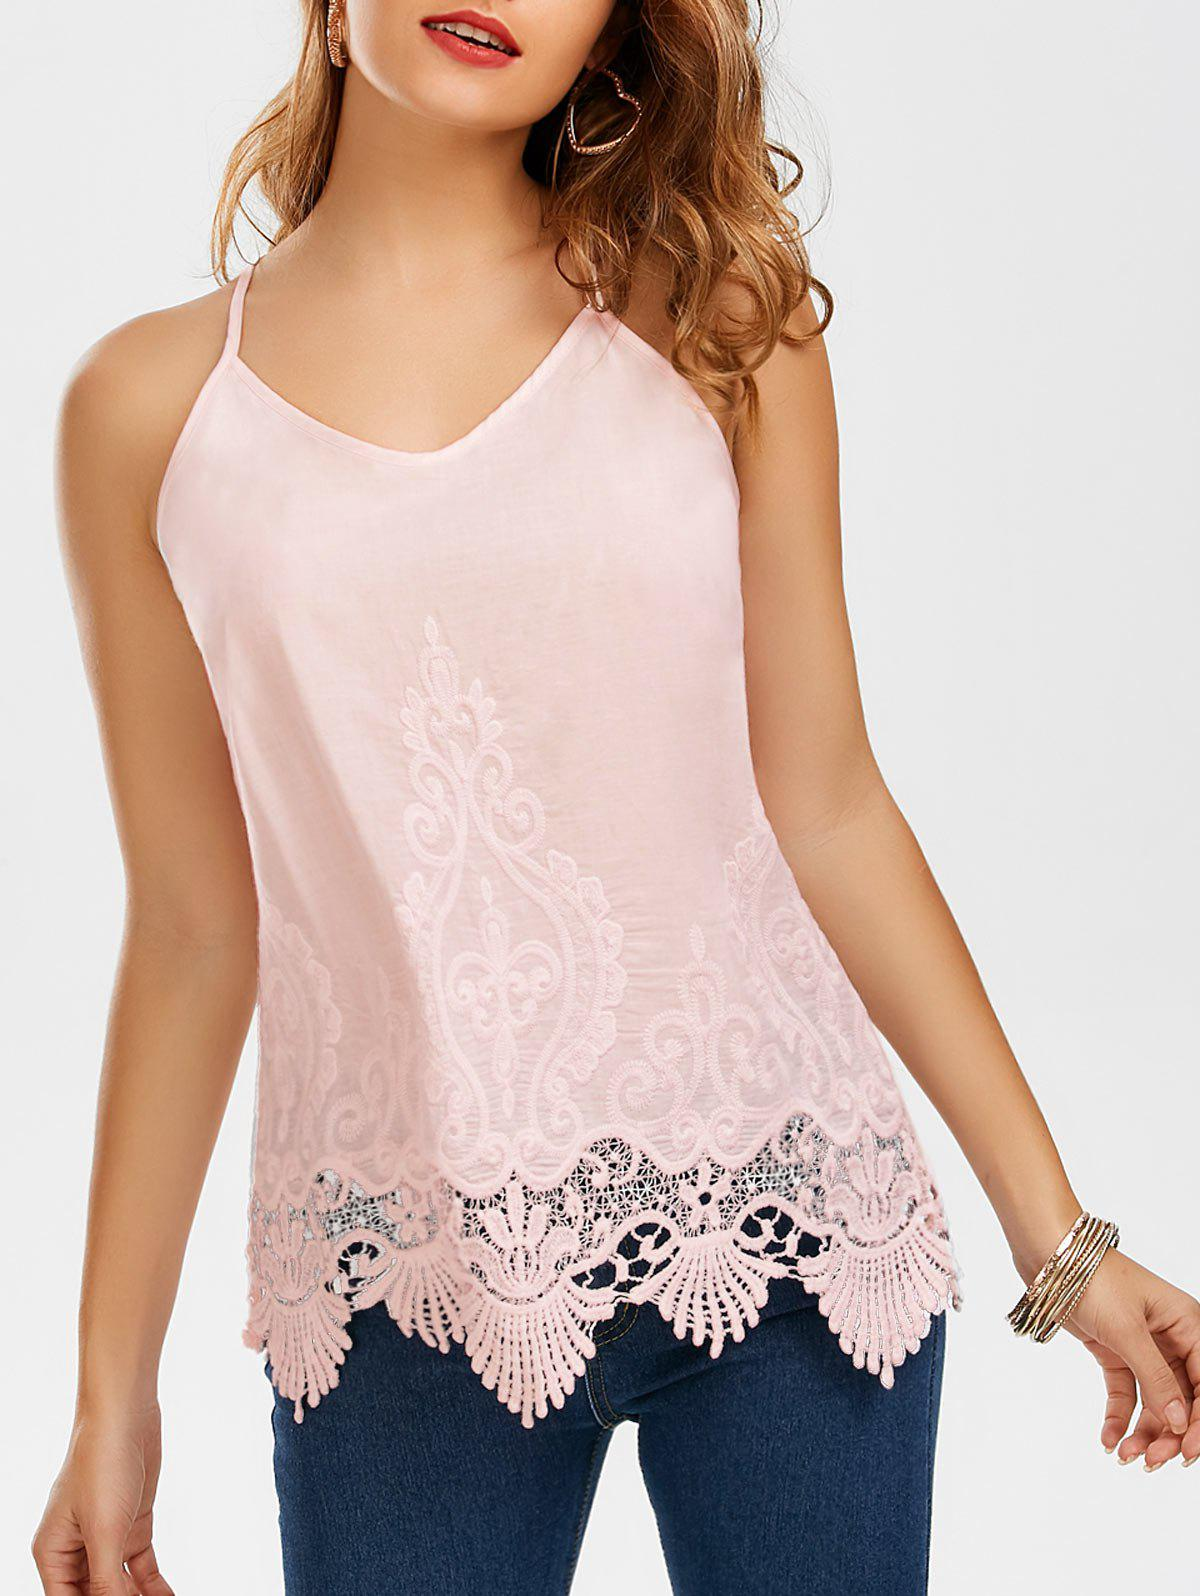 Embroidered Lace Trim Cami Top - PINK S